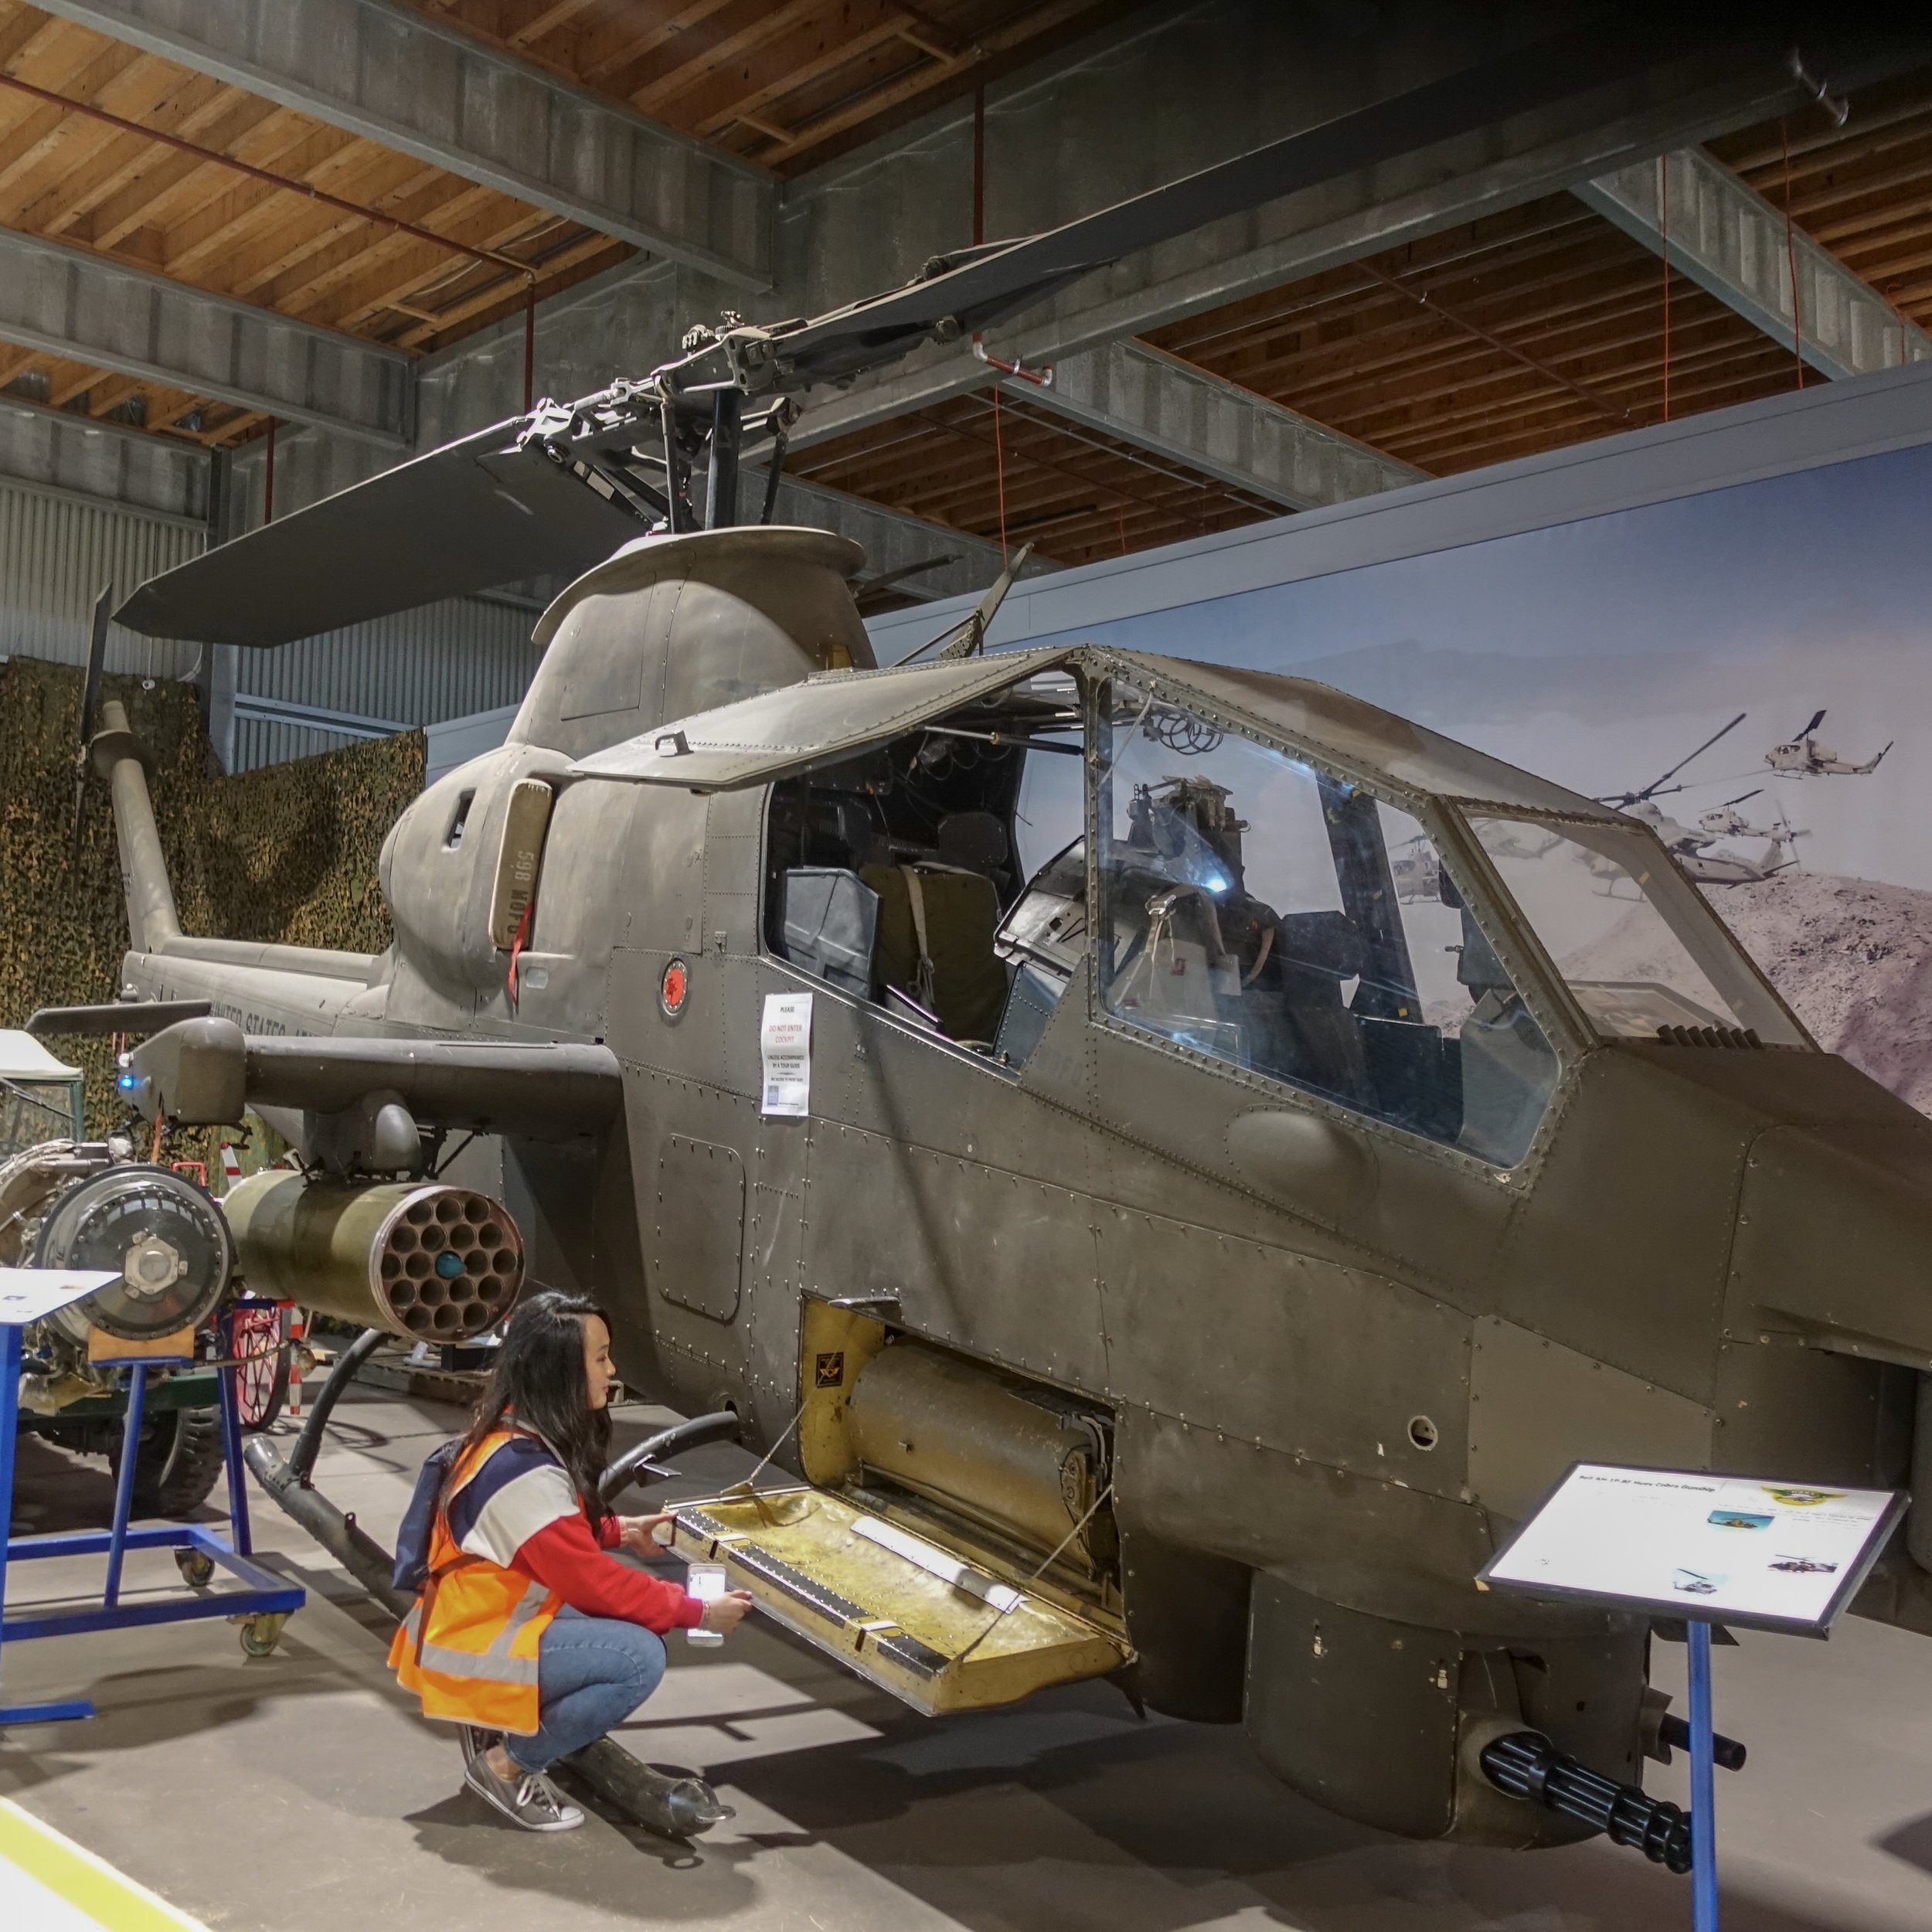 Things To Do In Shellharbour, NSW_HARS Aviation Musuem1.JPG